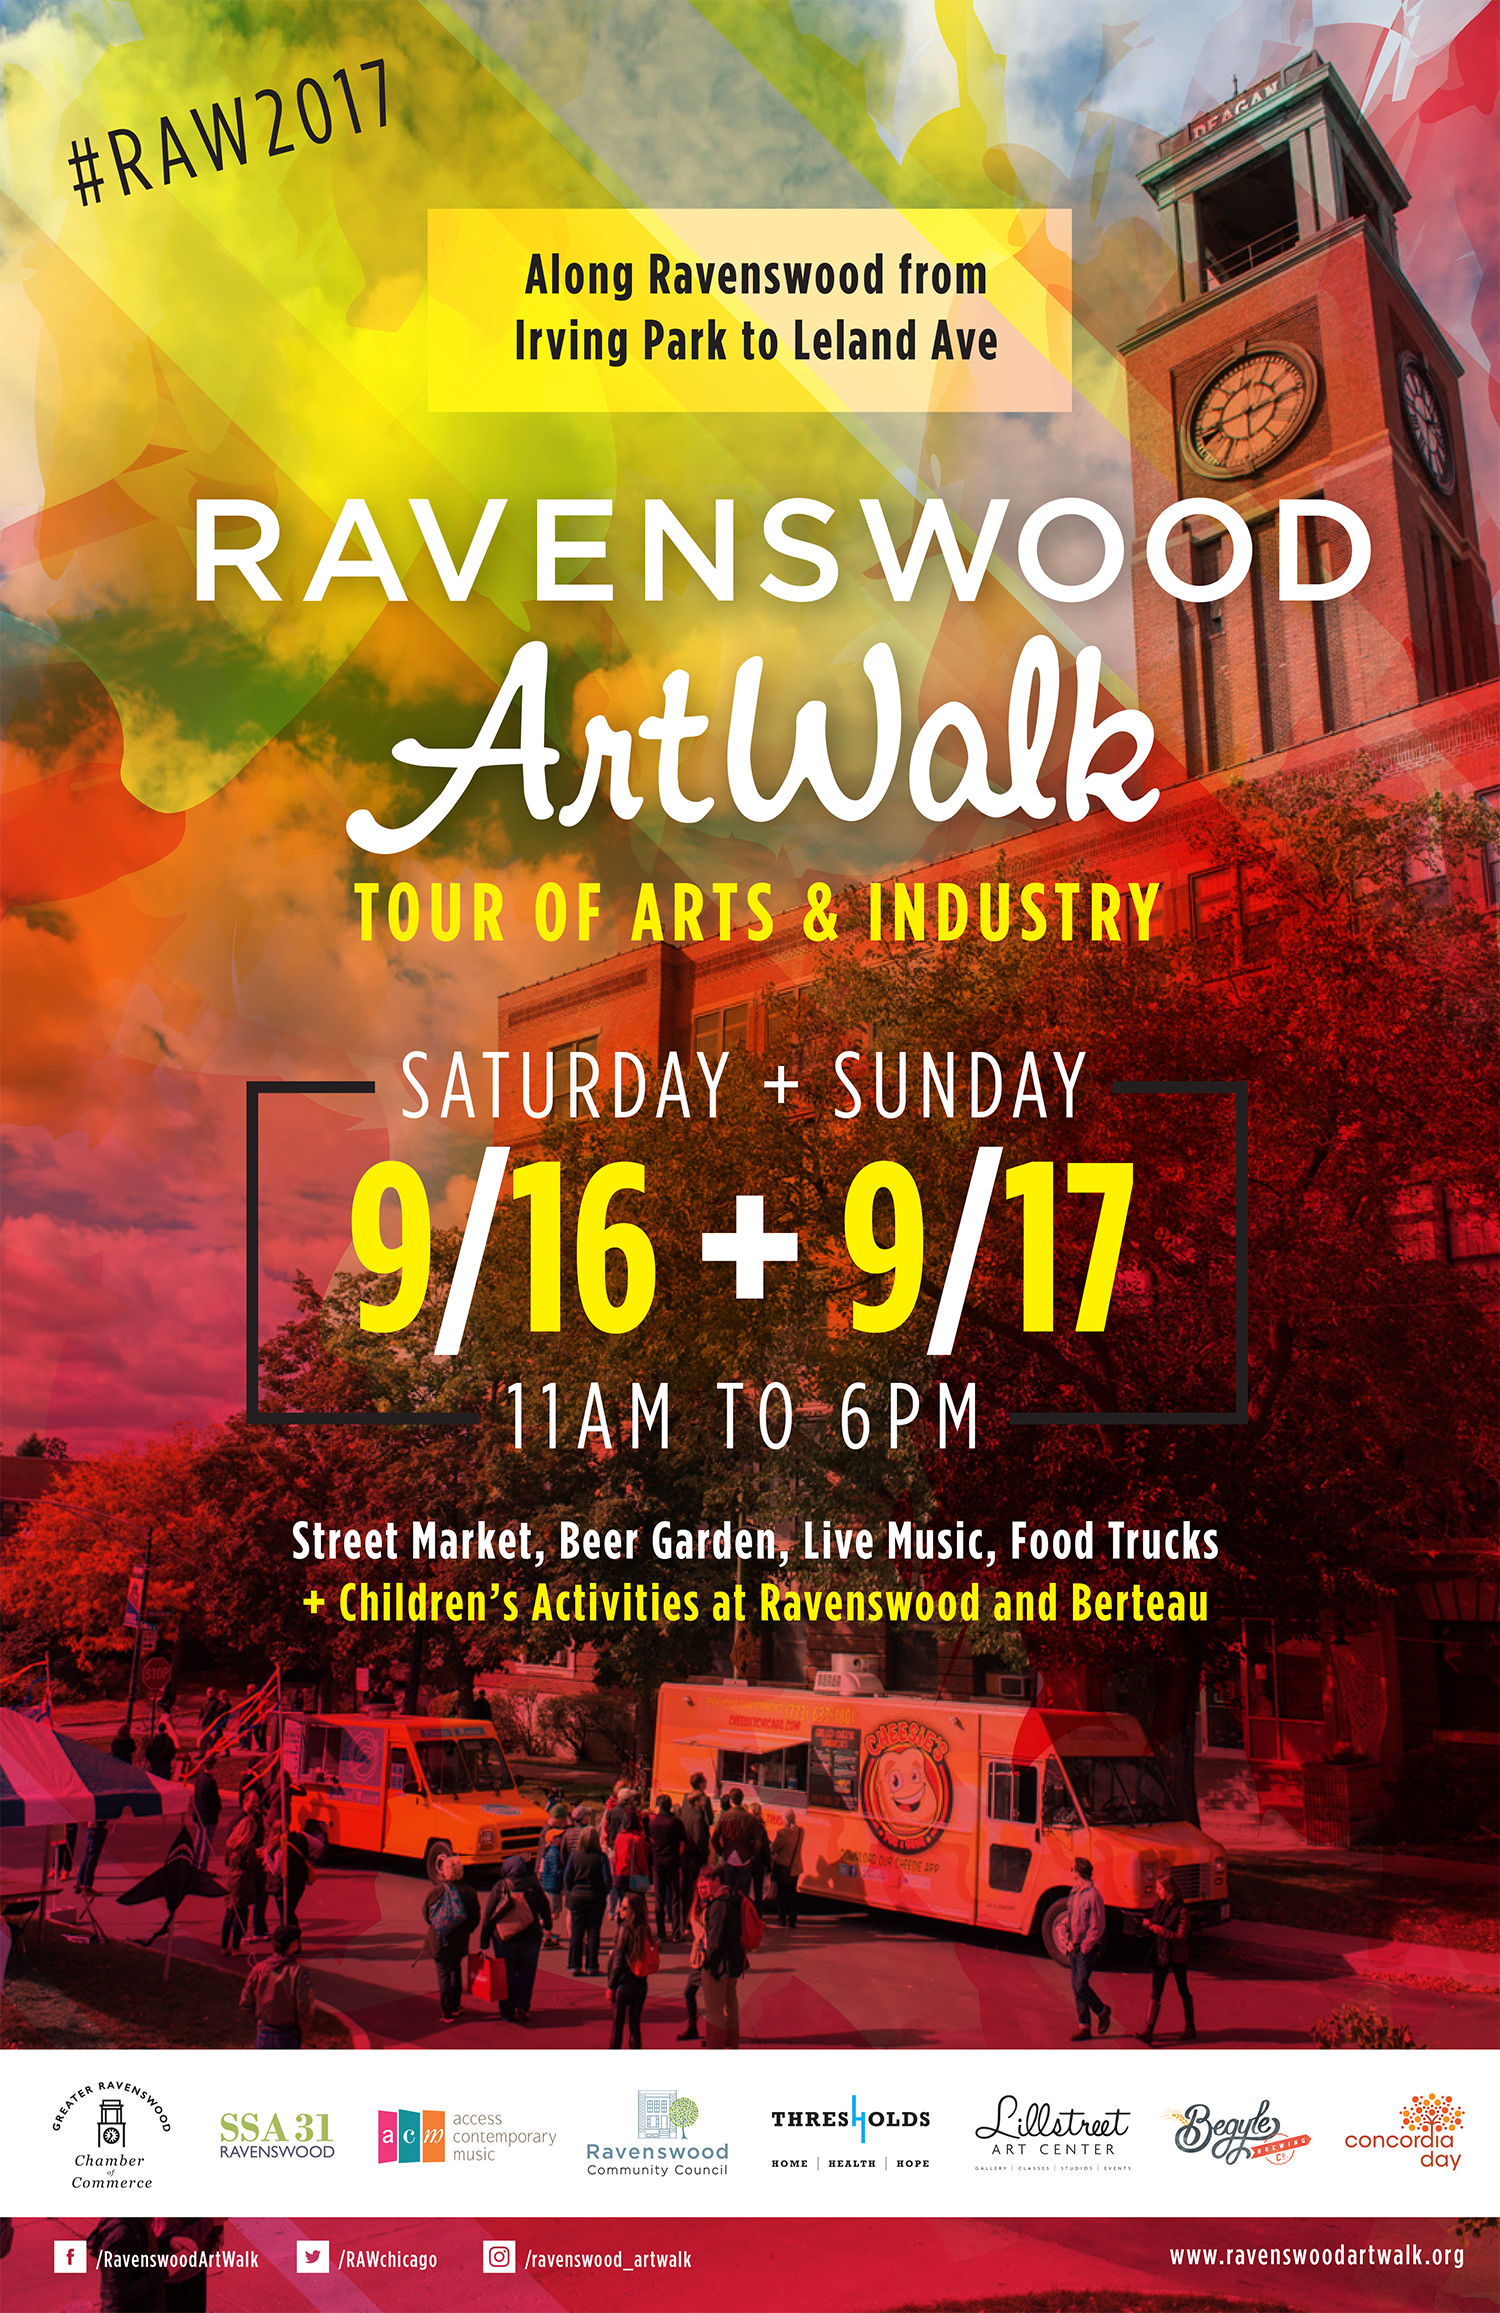 Ravenswood Art Walk, the annual tour of arts and industry in the Ravenswood neighborhood